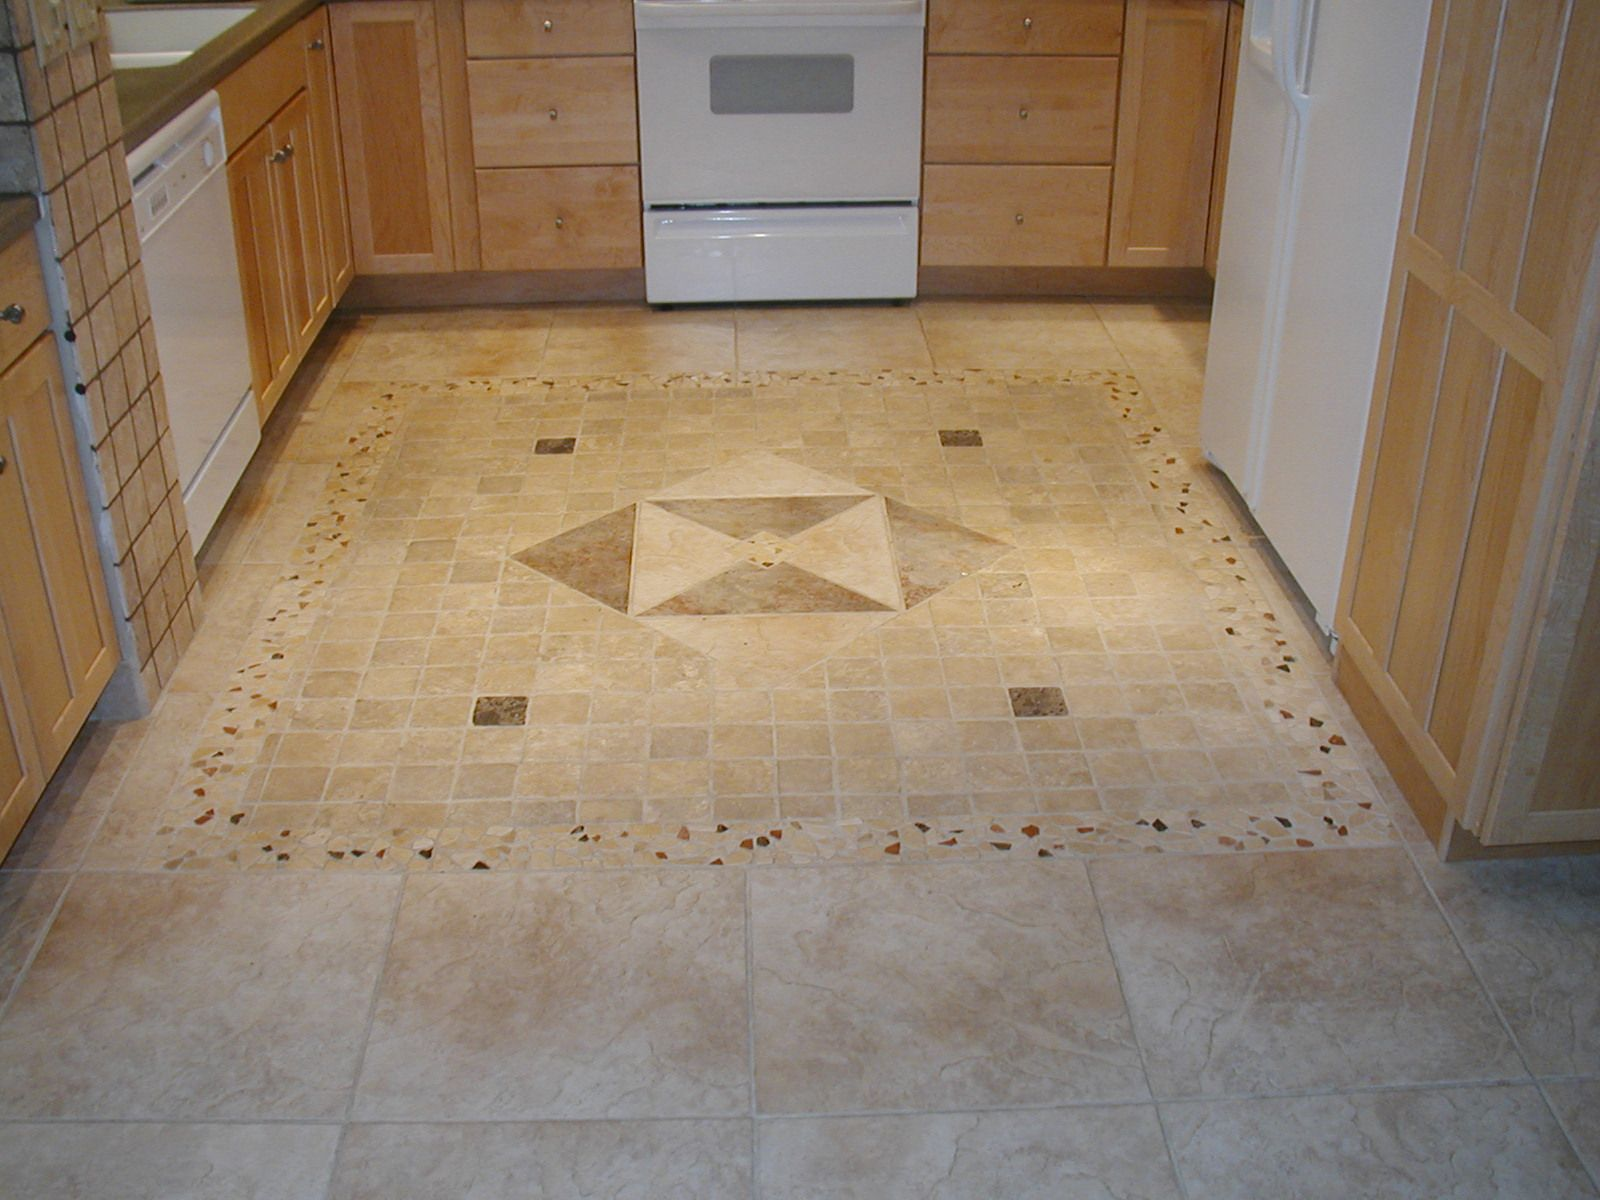 floor designs kitchen tile floors Maybe a desing in the middle of the kitchen like this kitchen floor porcelain tile